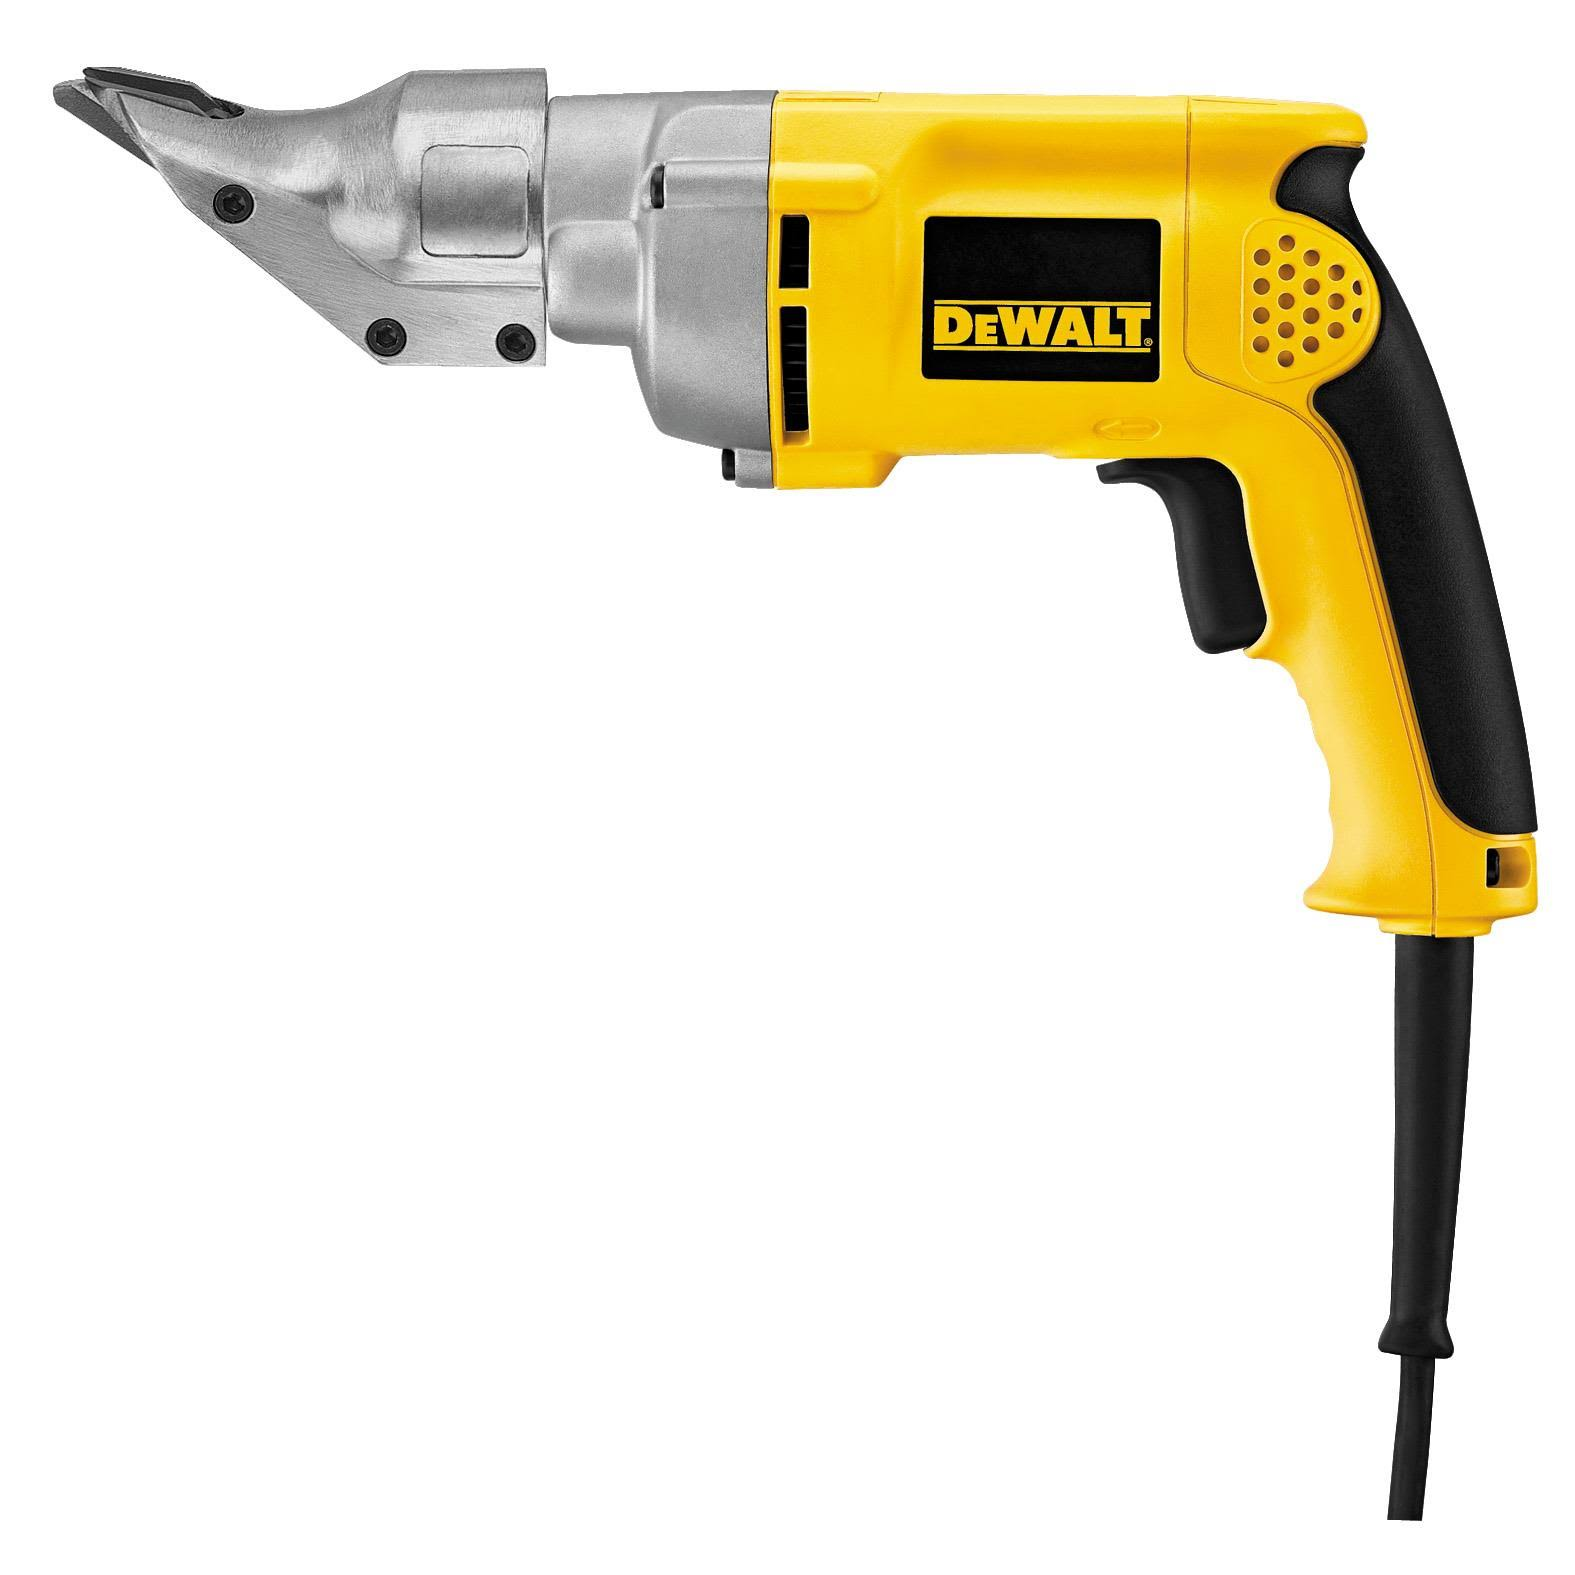 DeWalt DW890 18-Gauge Swivel Head Shear